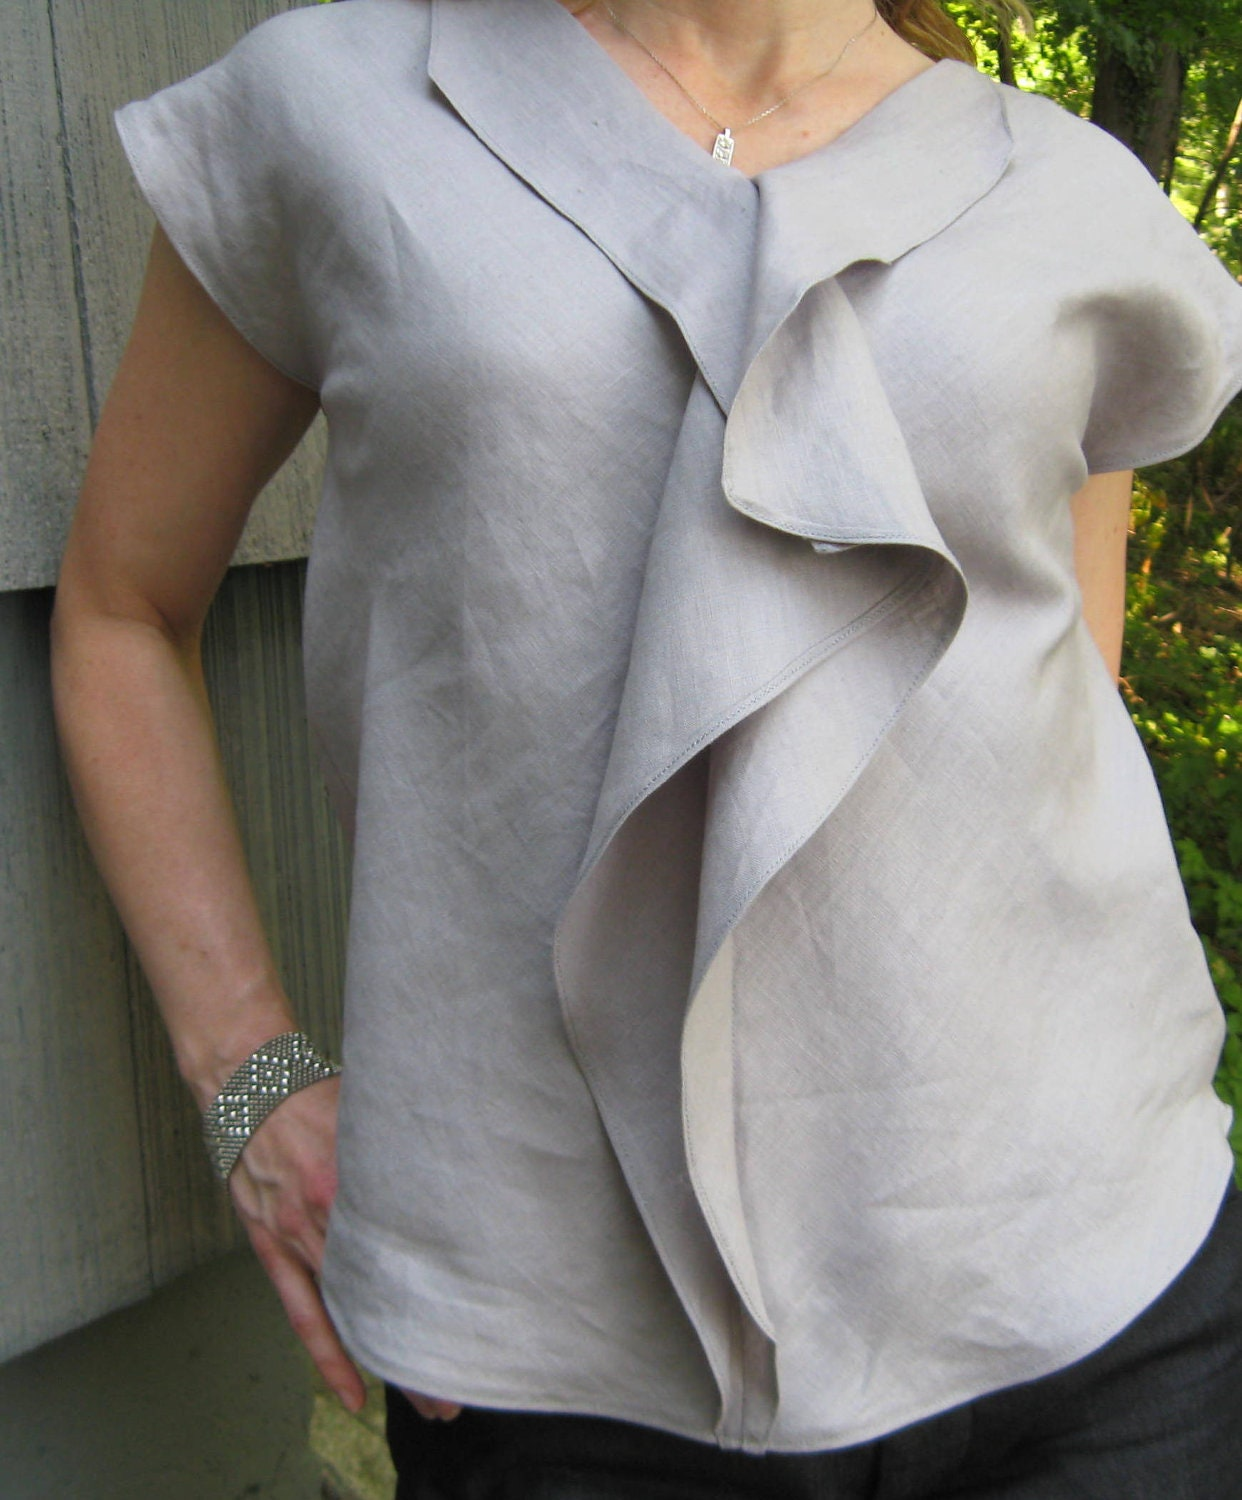 tunic butterfly blouse linen gray navy blue for women made to order free shipping - betsybdesign